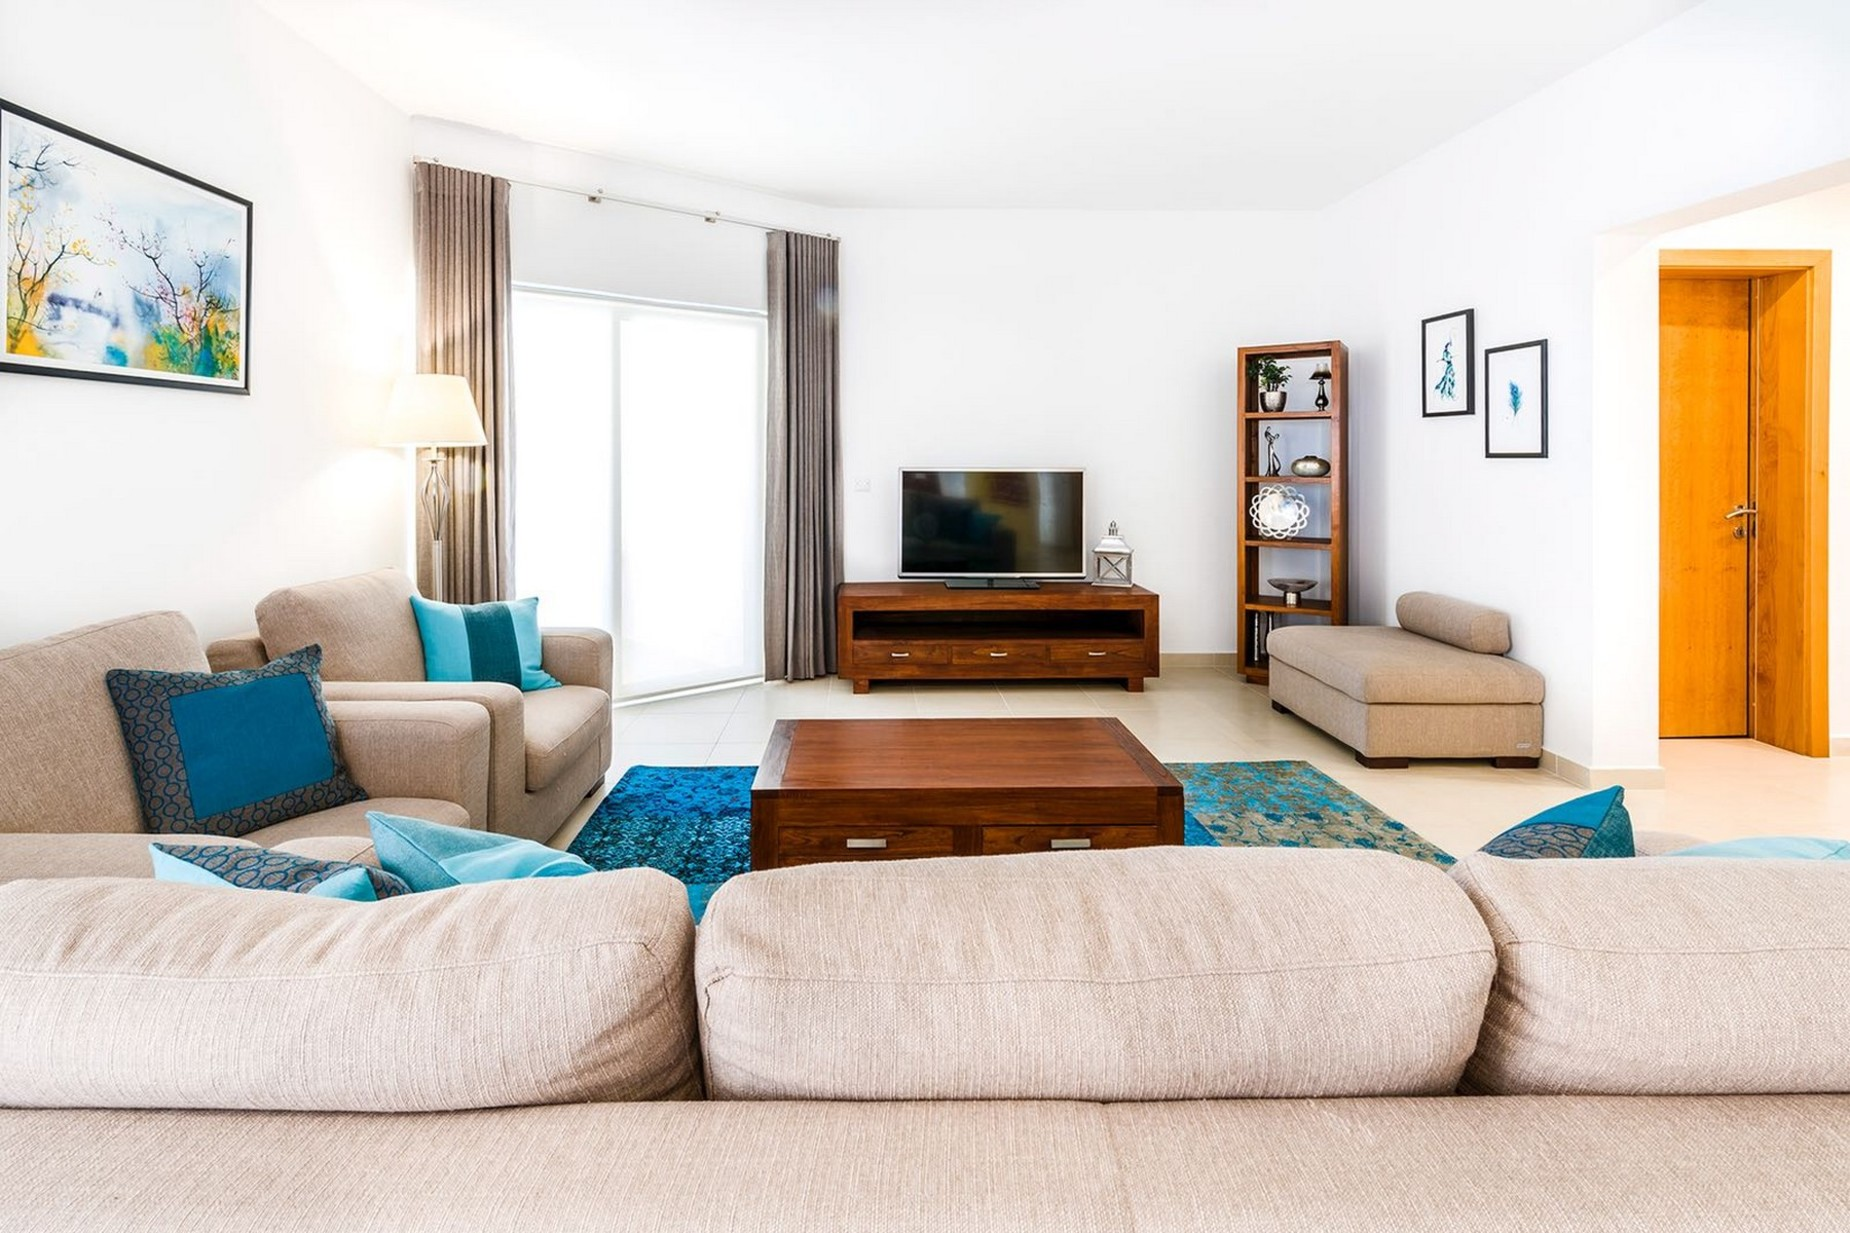 2 bed Apartment For Rent in Mellieha, Mellieha - thumb 2